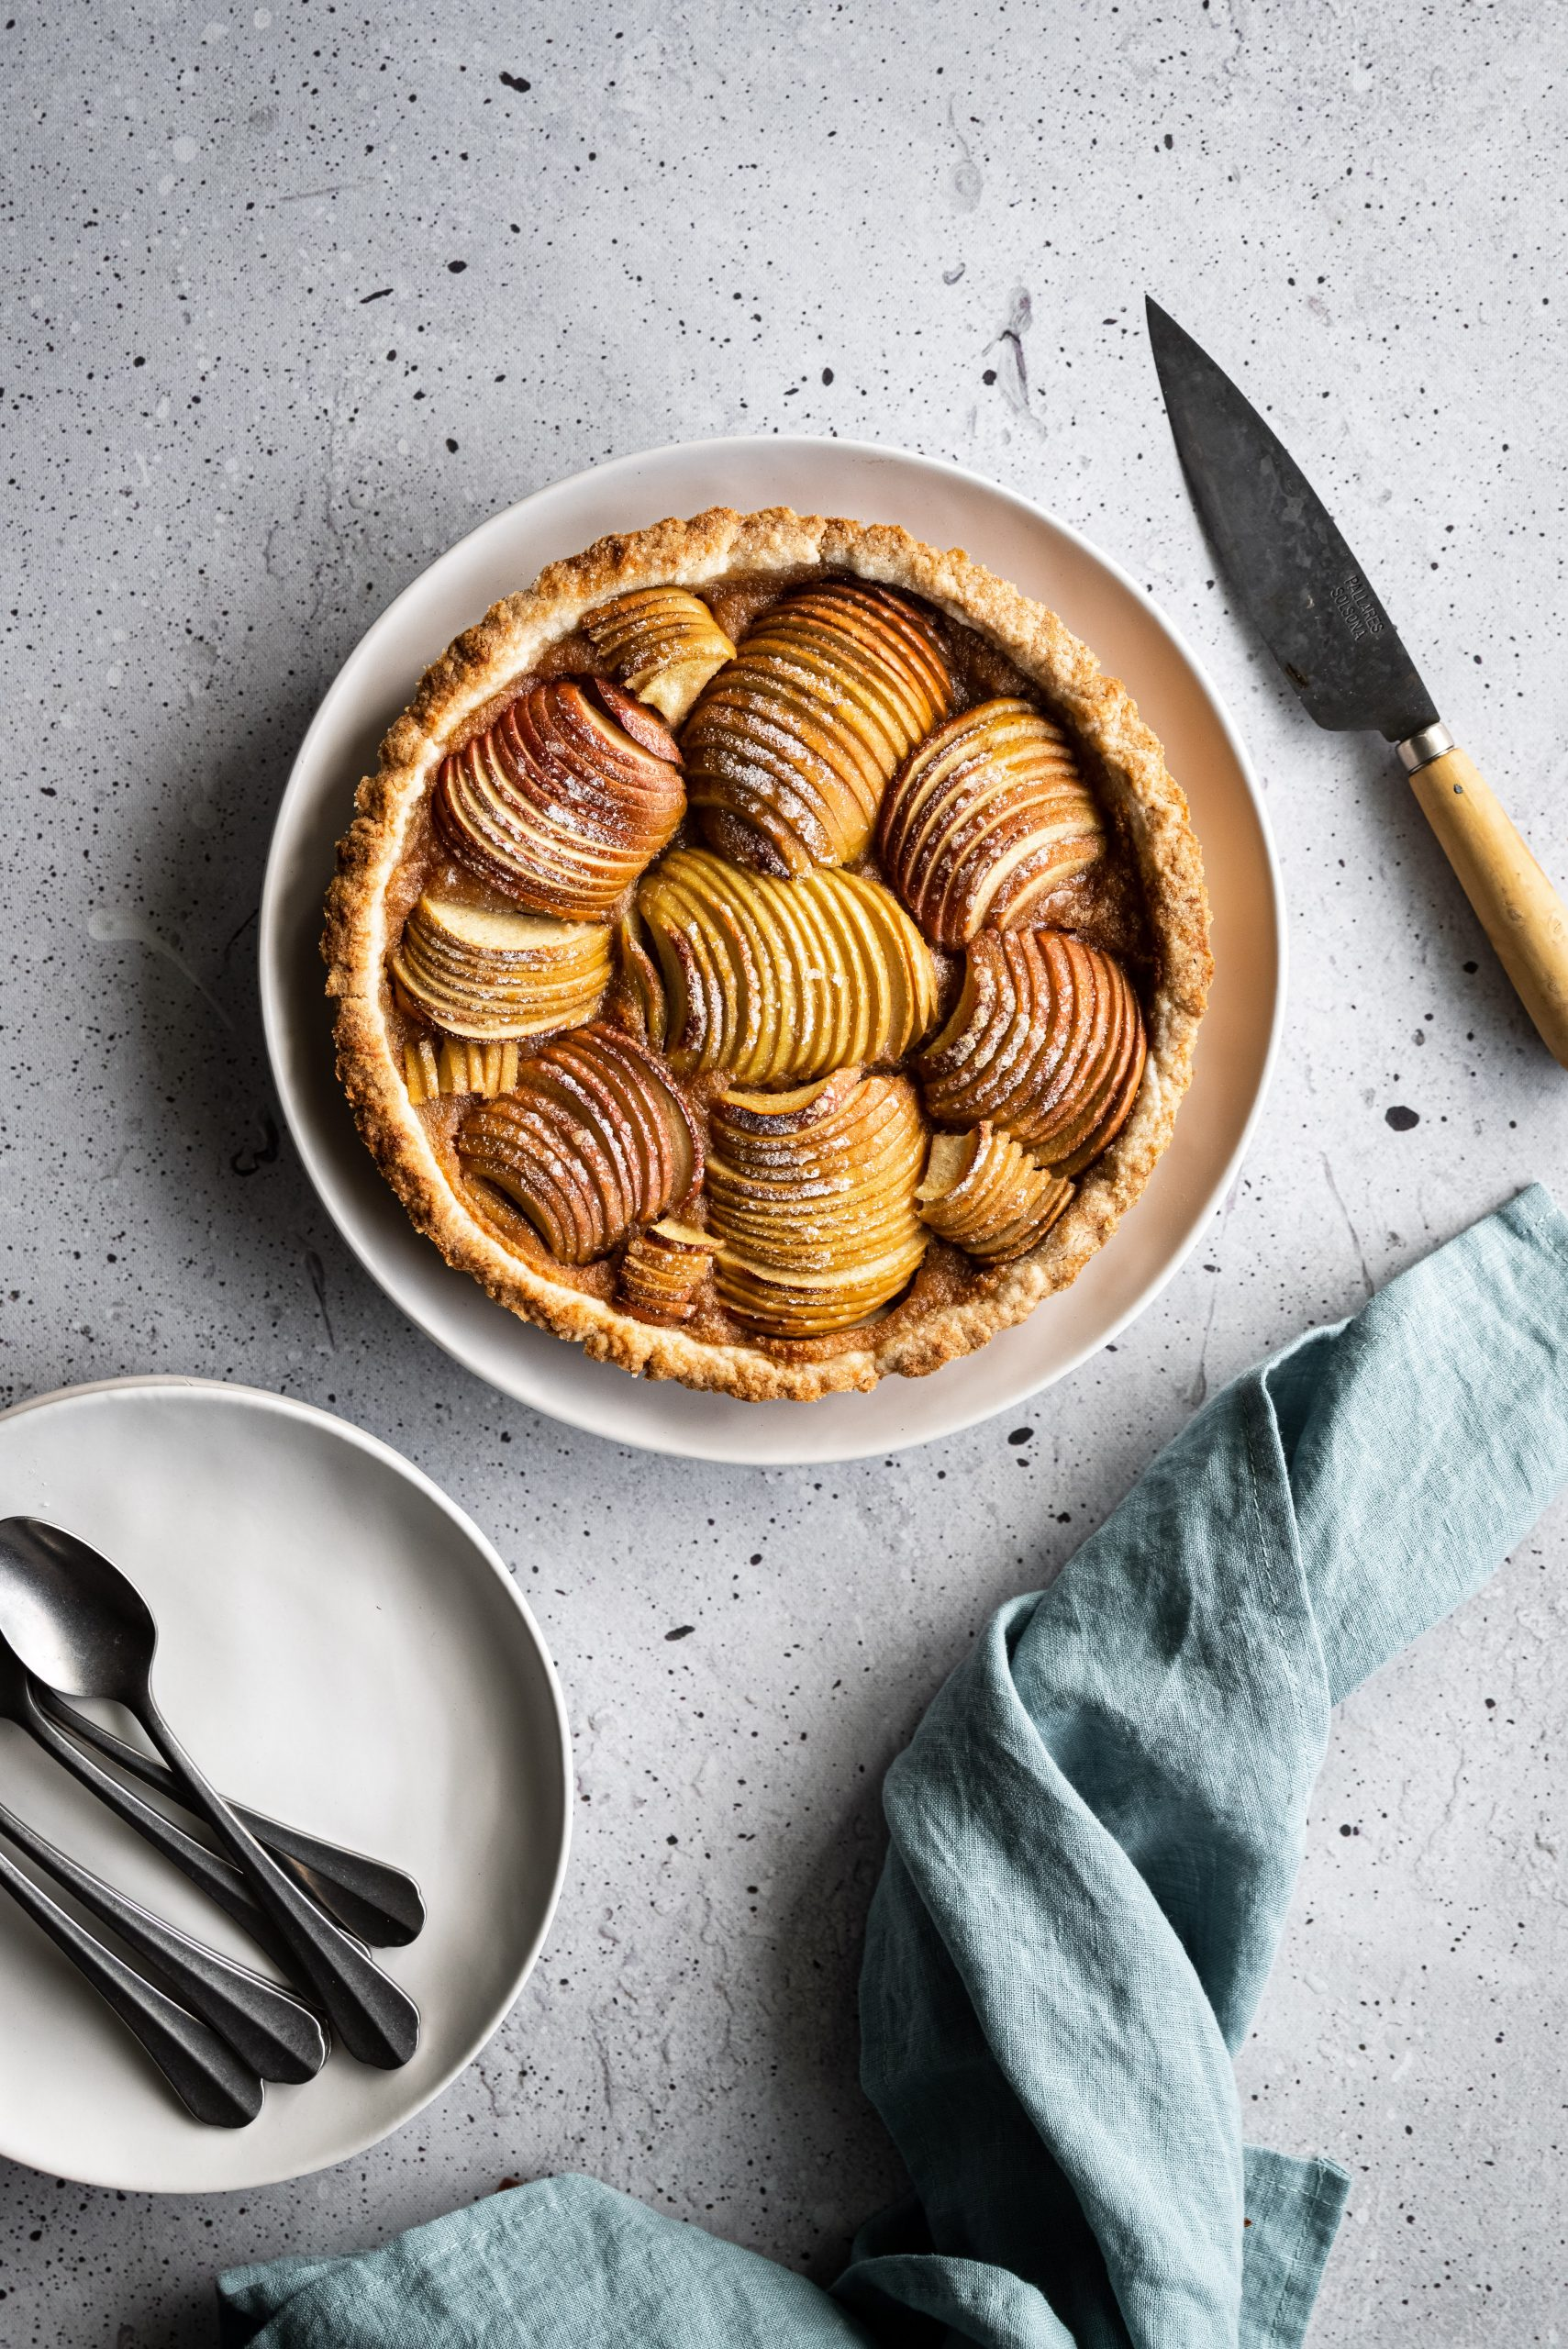 overhead image of a french apple tart on a grey surface with white dishes, a blue linen and a paring knife.